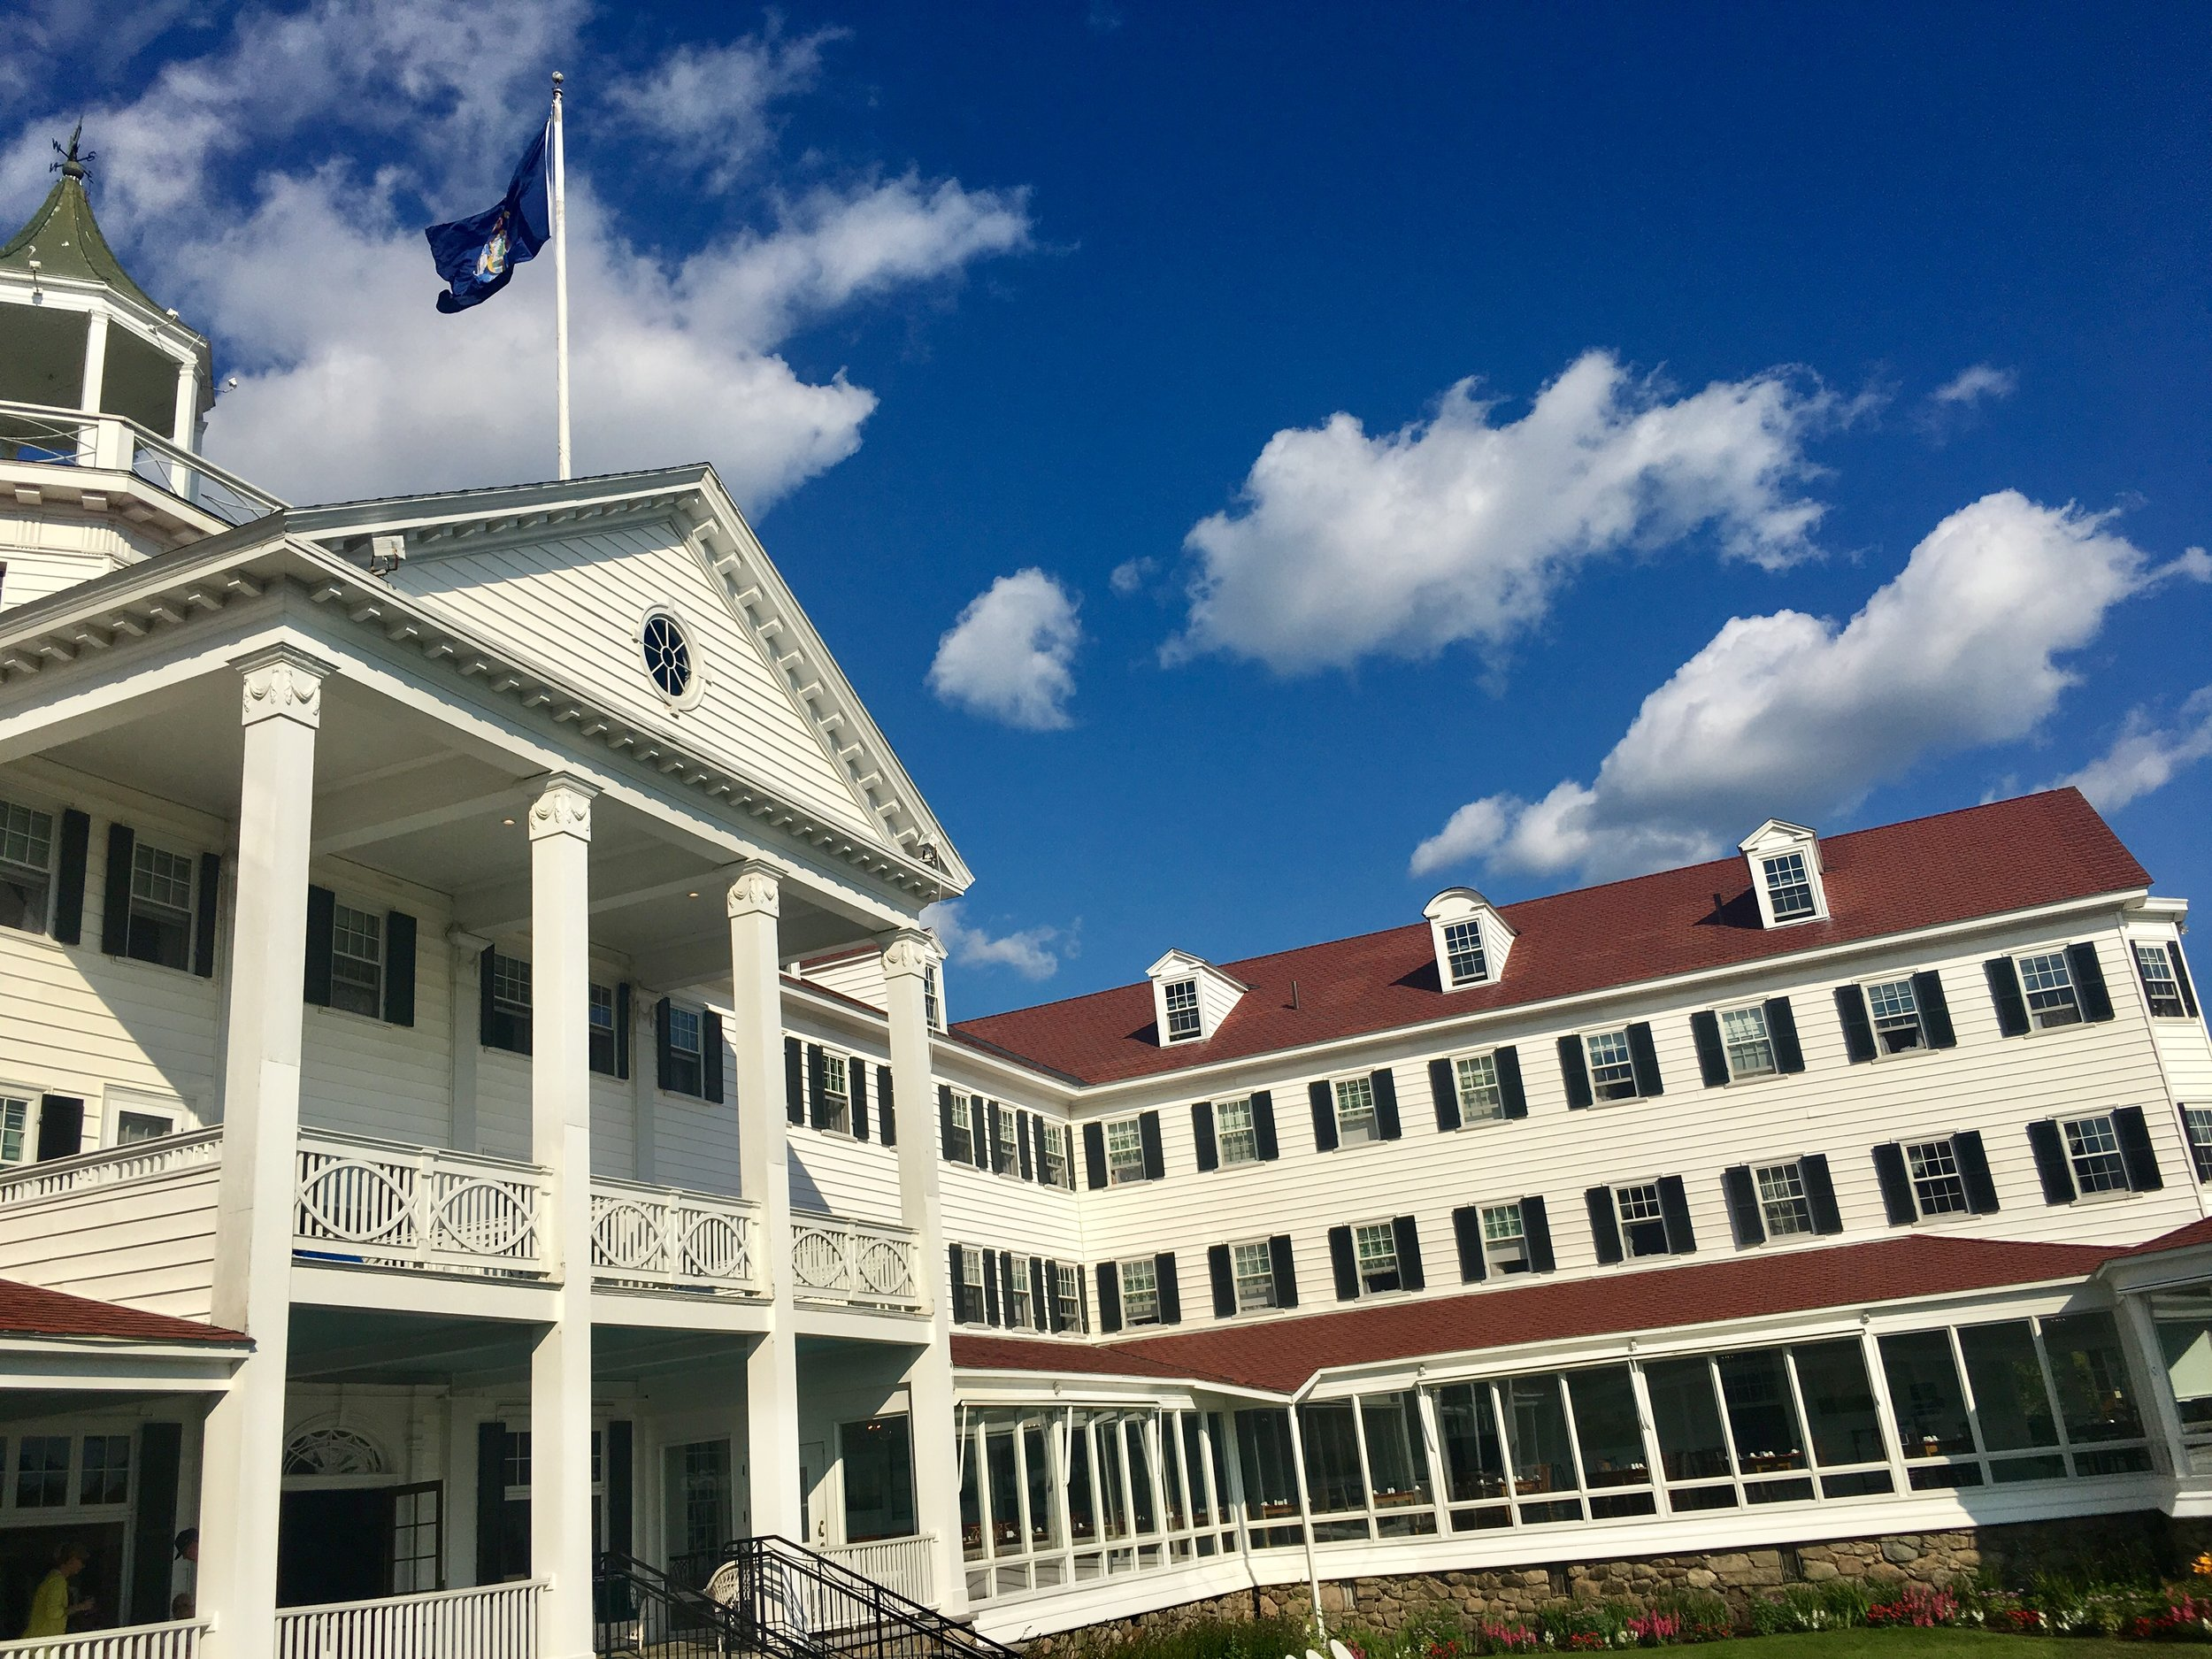 Where to stay in Kennebunkport, Maine - The Colony Hotel #maine #travel #missfunctionalmoney